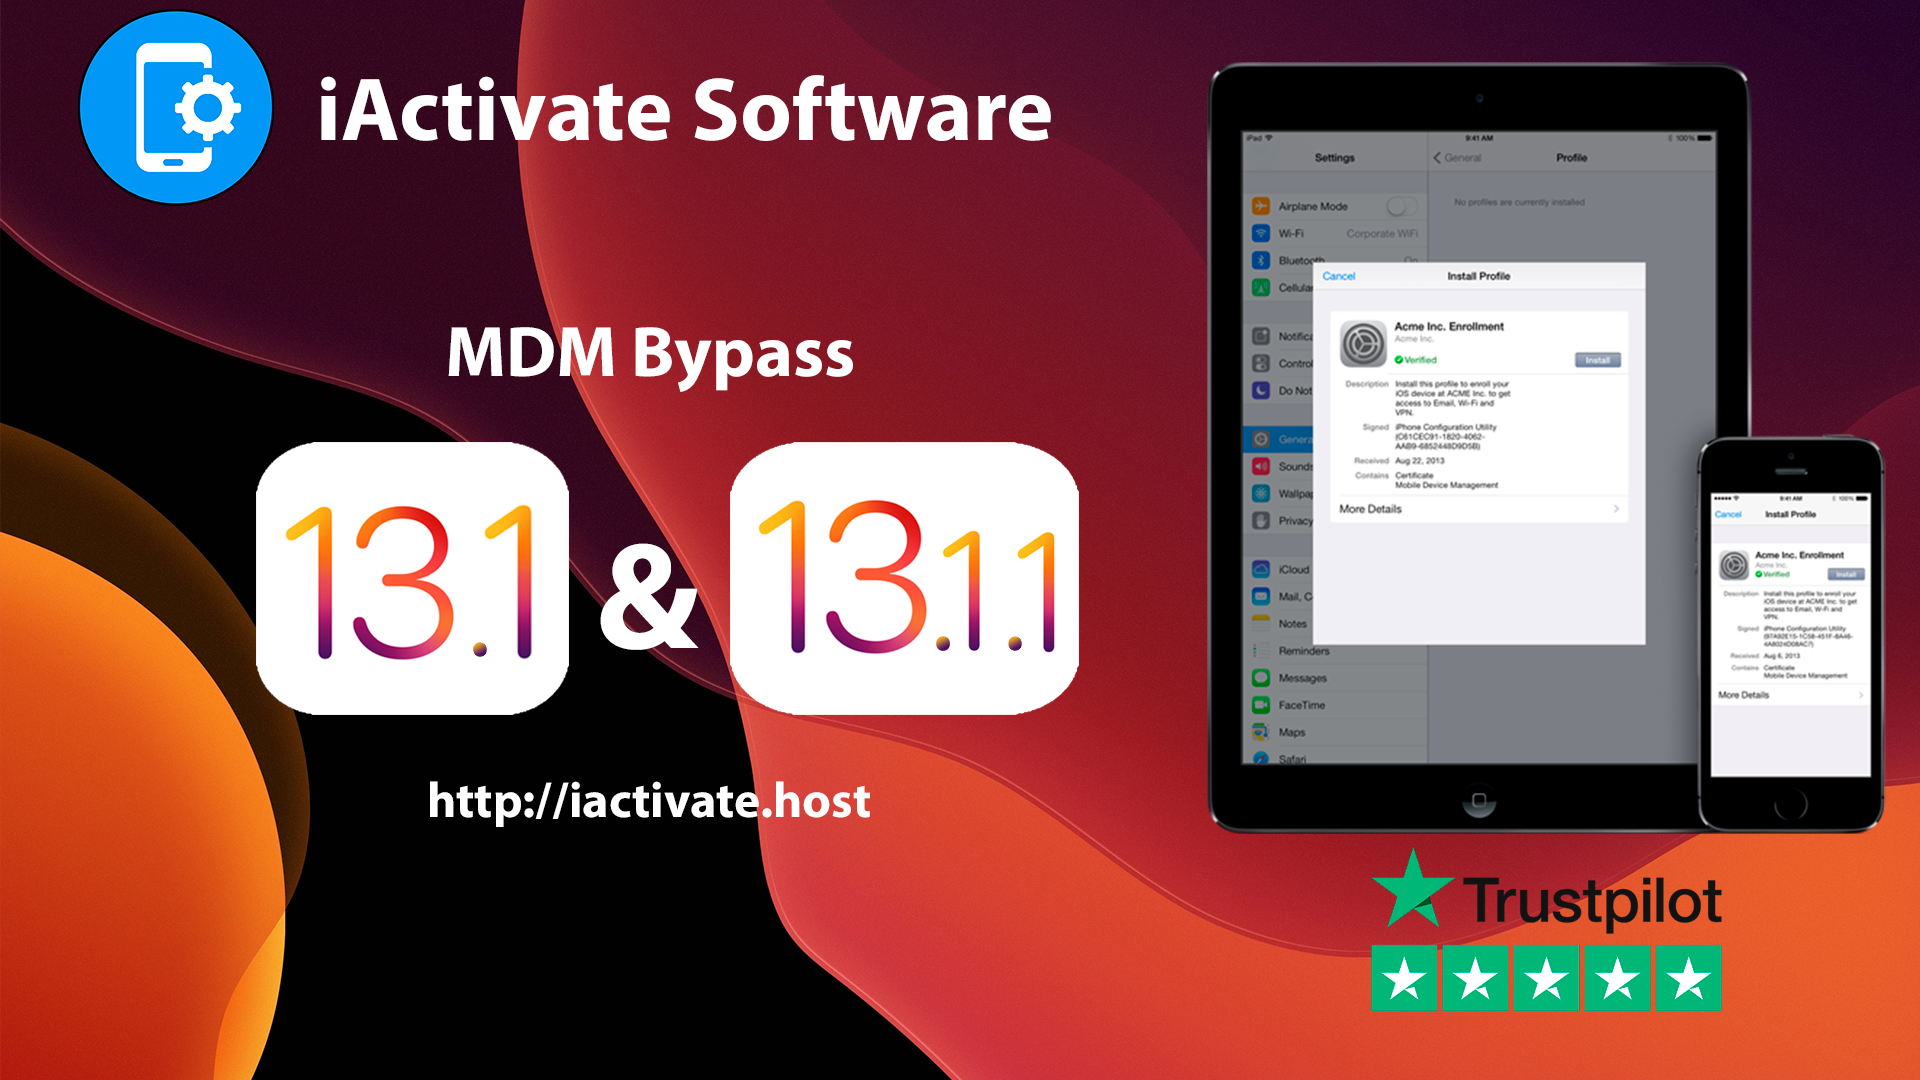 Bypass MDM profile on iOS 13.1, 13.1.1 & 13.1.2 using iActivate